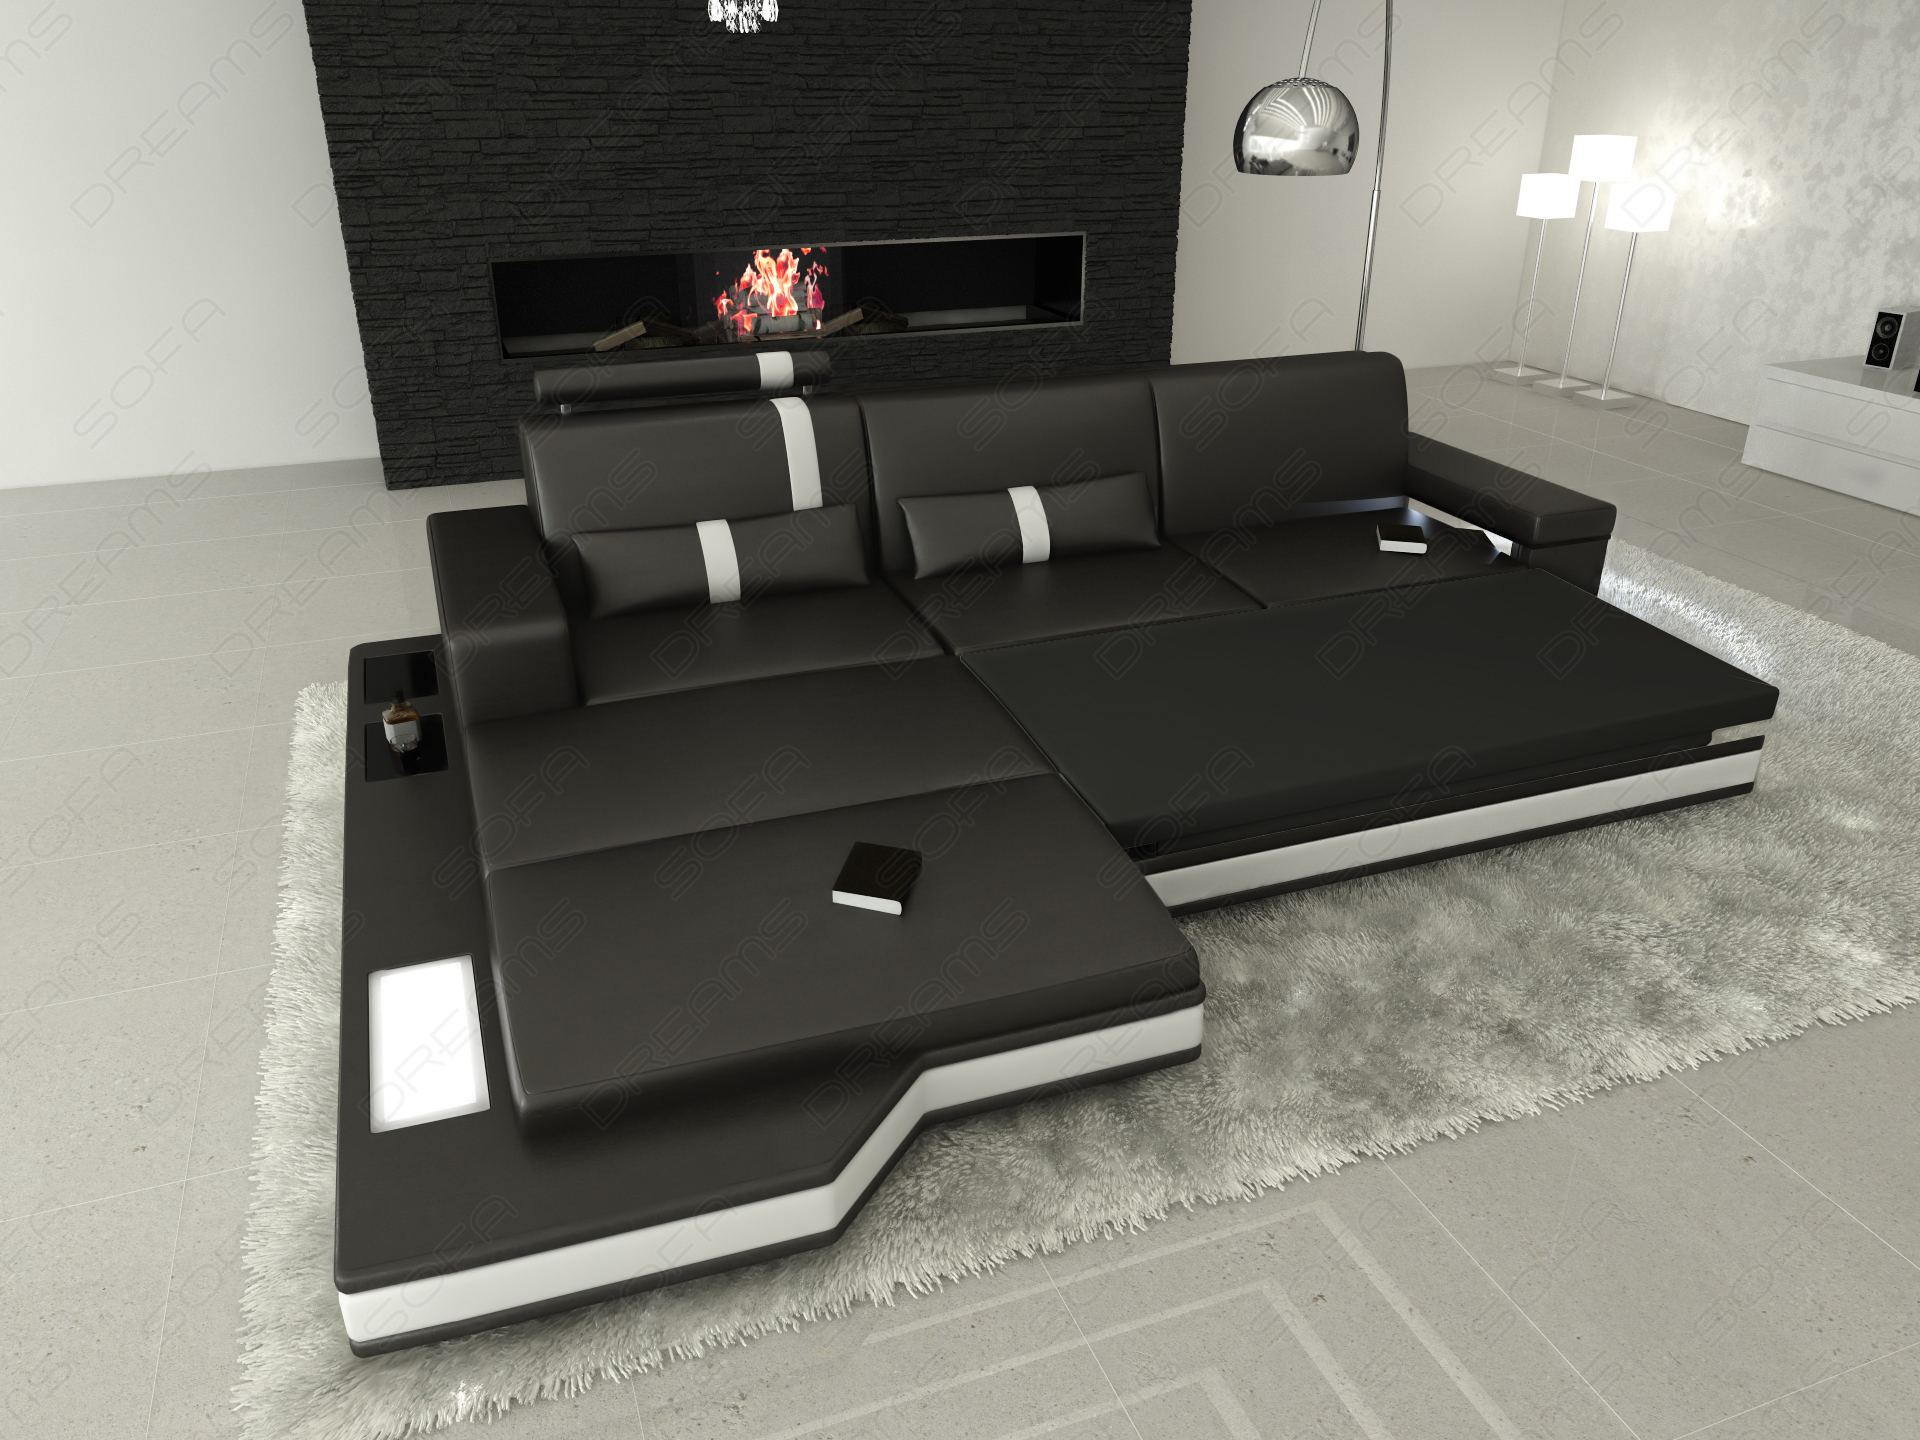 stoffsofa wohnlandschaft messana l form materialmix schwarzgrau mit beleuchtung. Black Bedroom Furniture Sets. Home Design Ideas